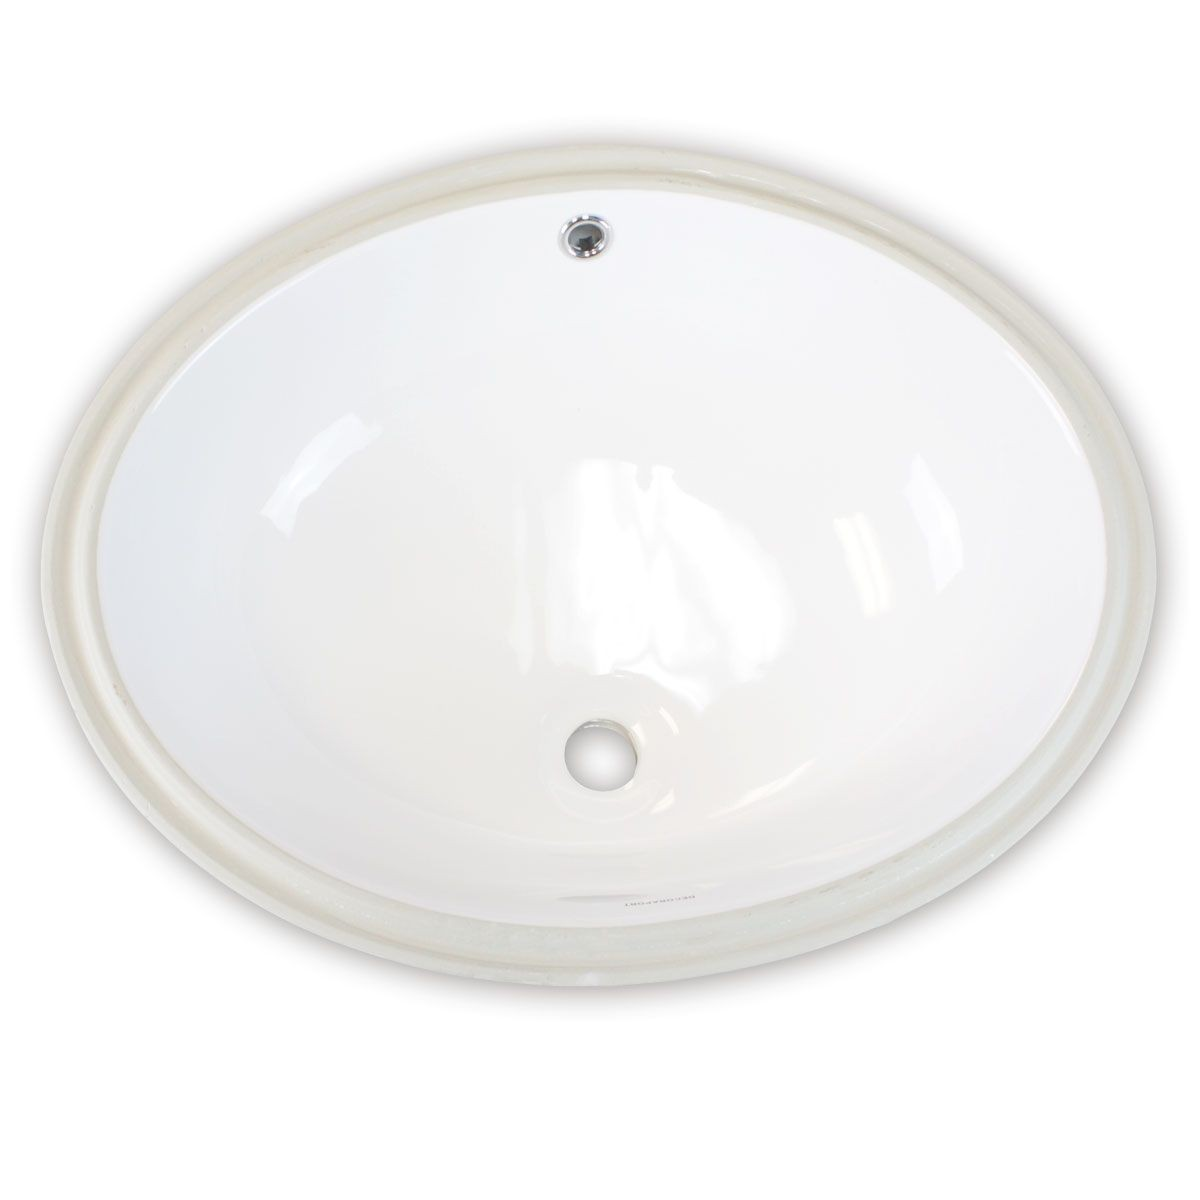 Decoraport White Oval Ceramic Under Mount Basin (MY-3708)